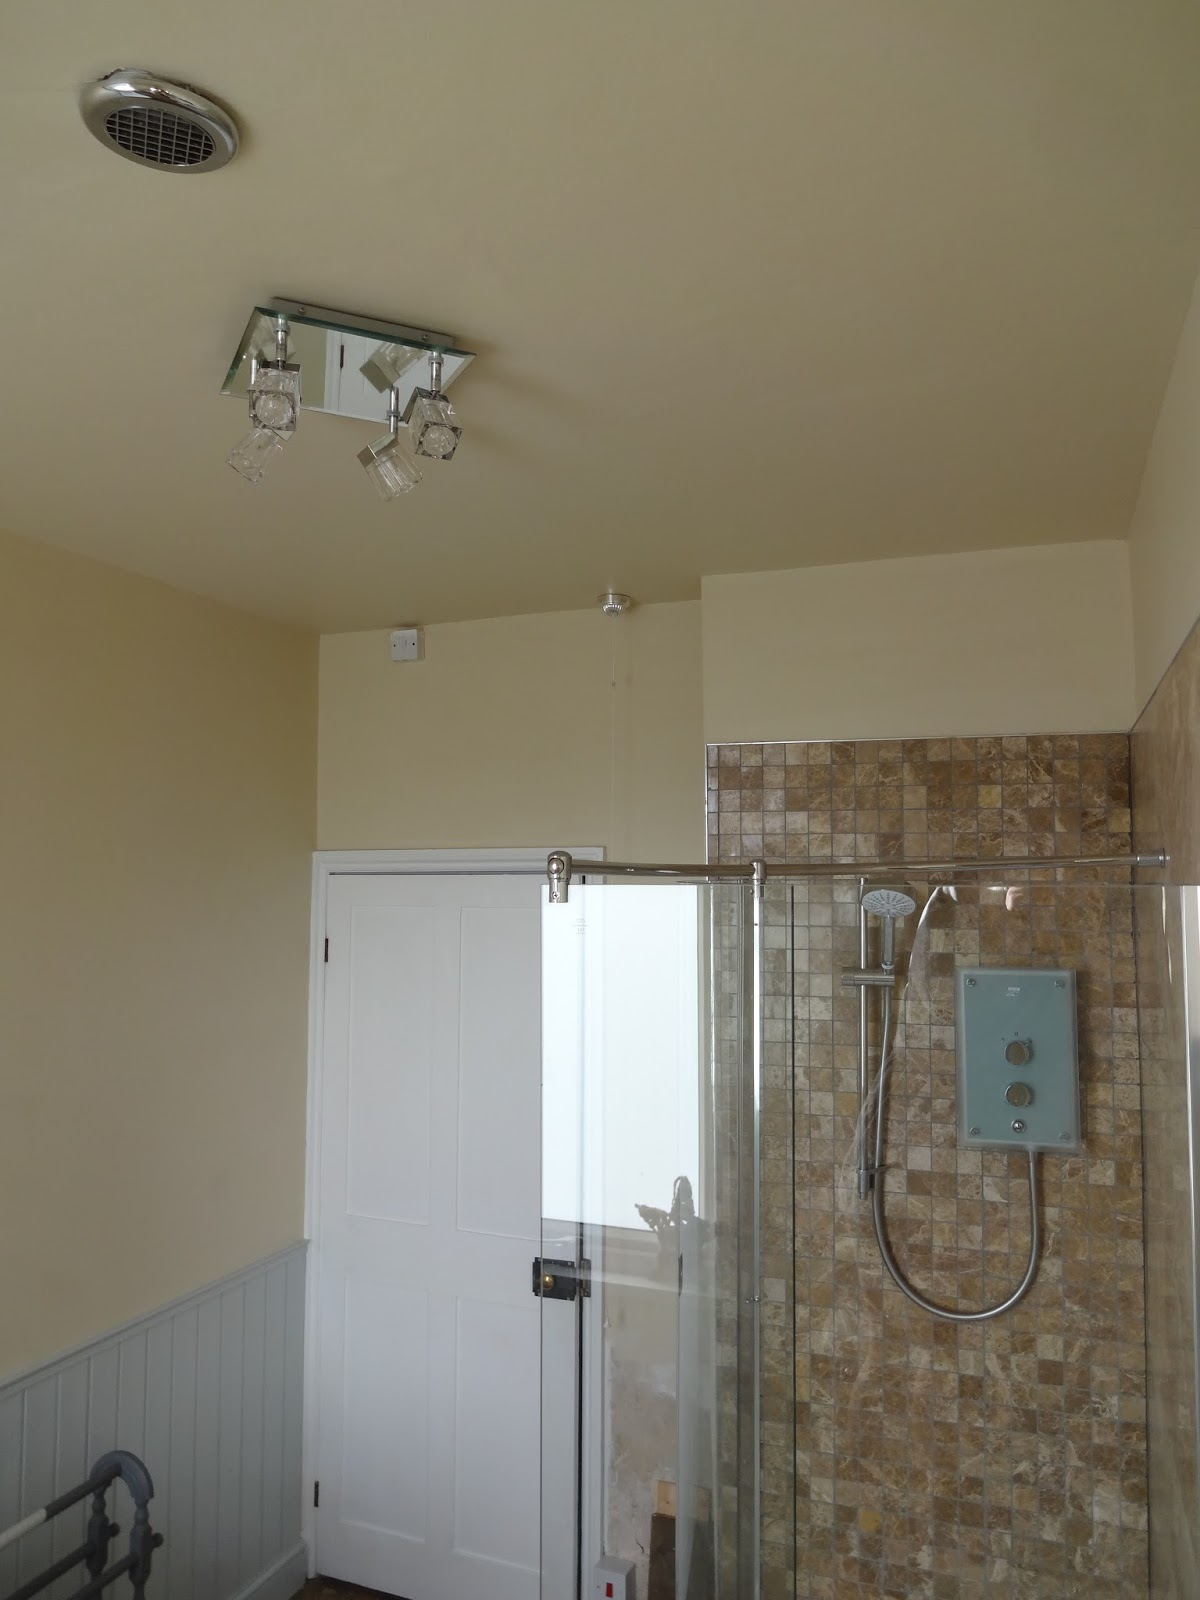 Bathroom shower extractor fans - Locating The Extractor Fan In A Bathroom